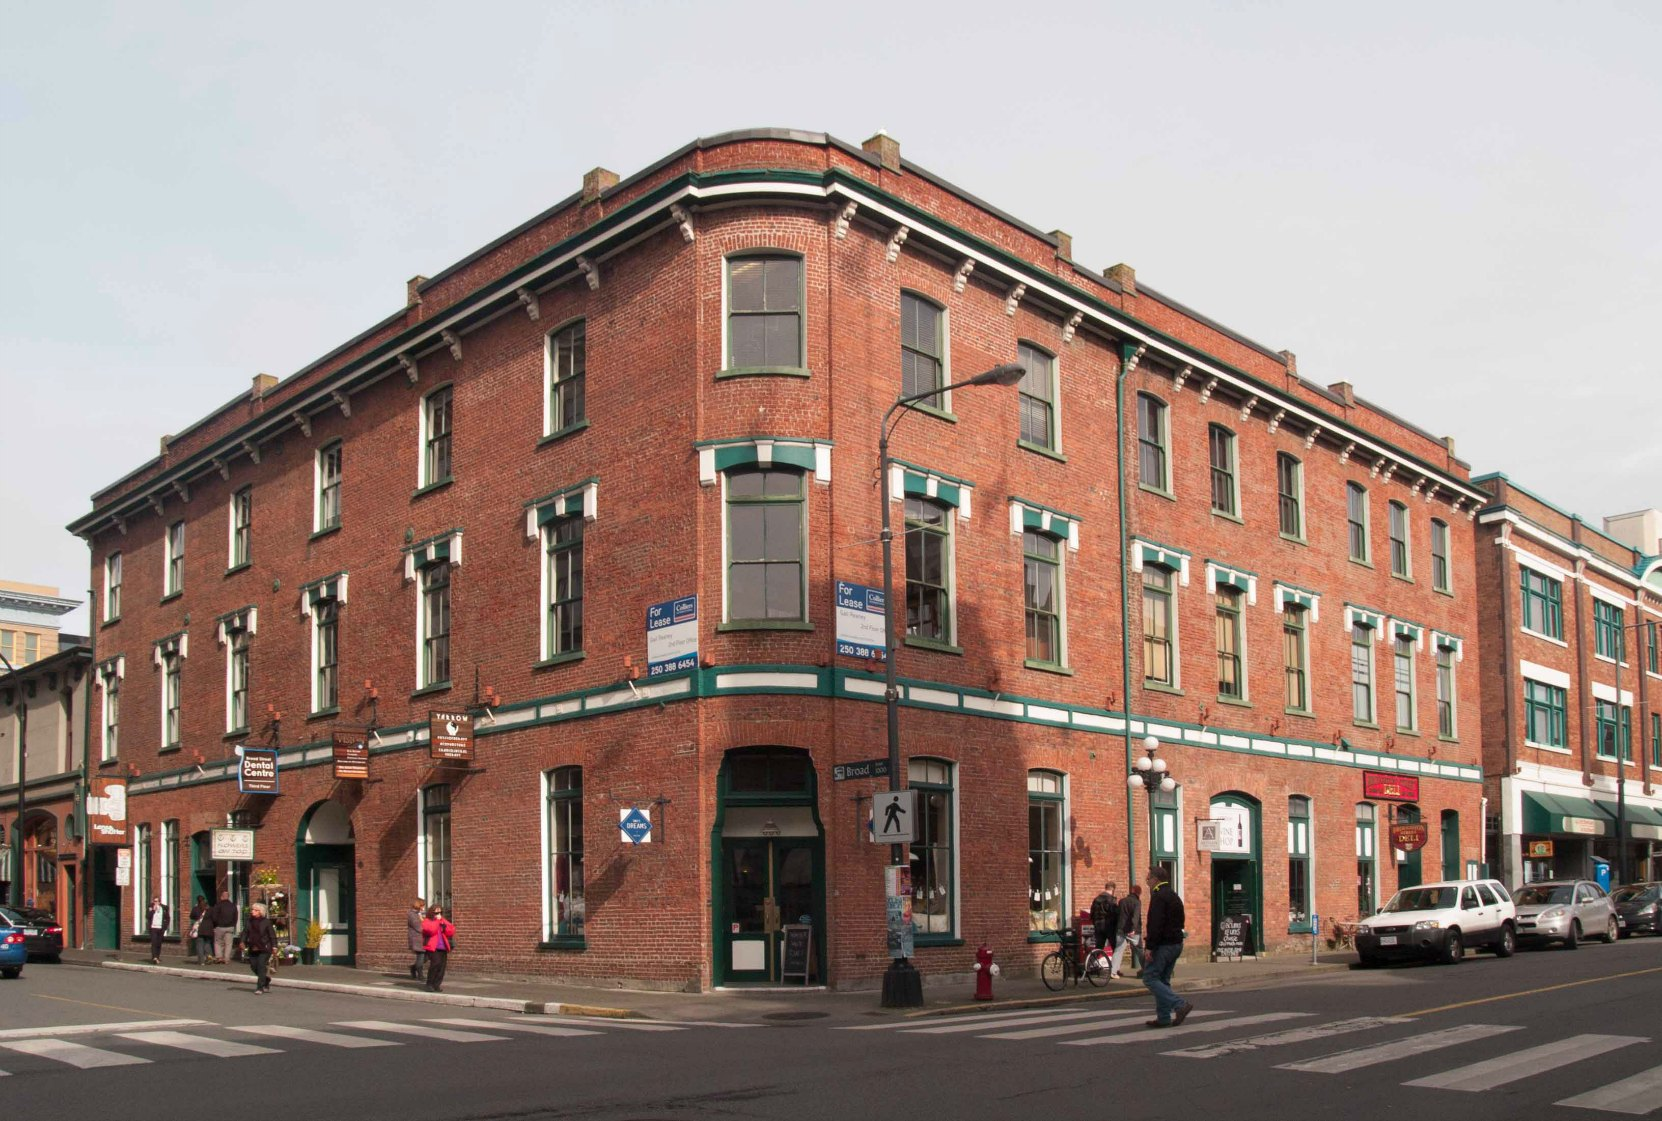 Weiler Building, now known as the Counting House, Victoria, B.C, Built by John Weiler as a warehouse, showroom and manufacturing facility for his furniture business (photo by Temple Lodge No. 33 Historian)